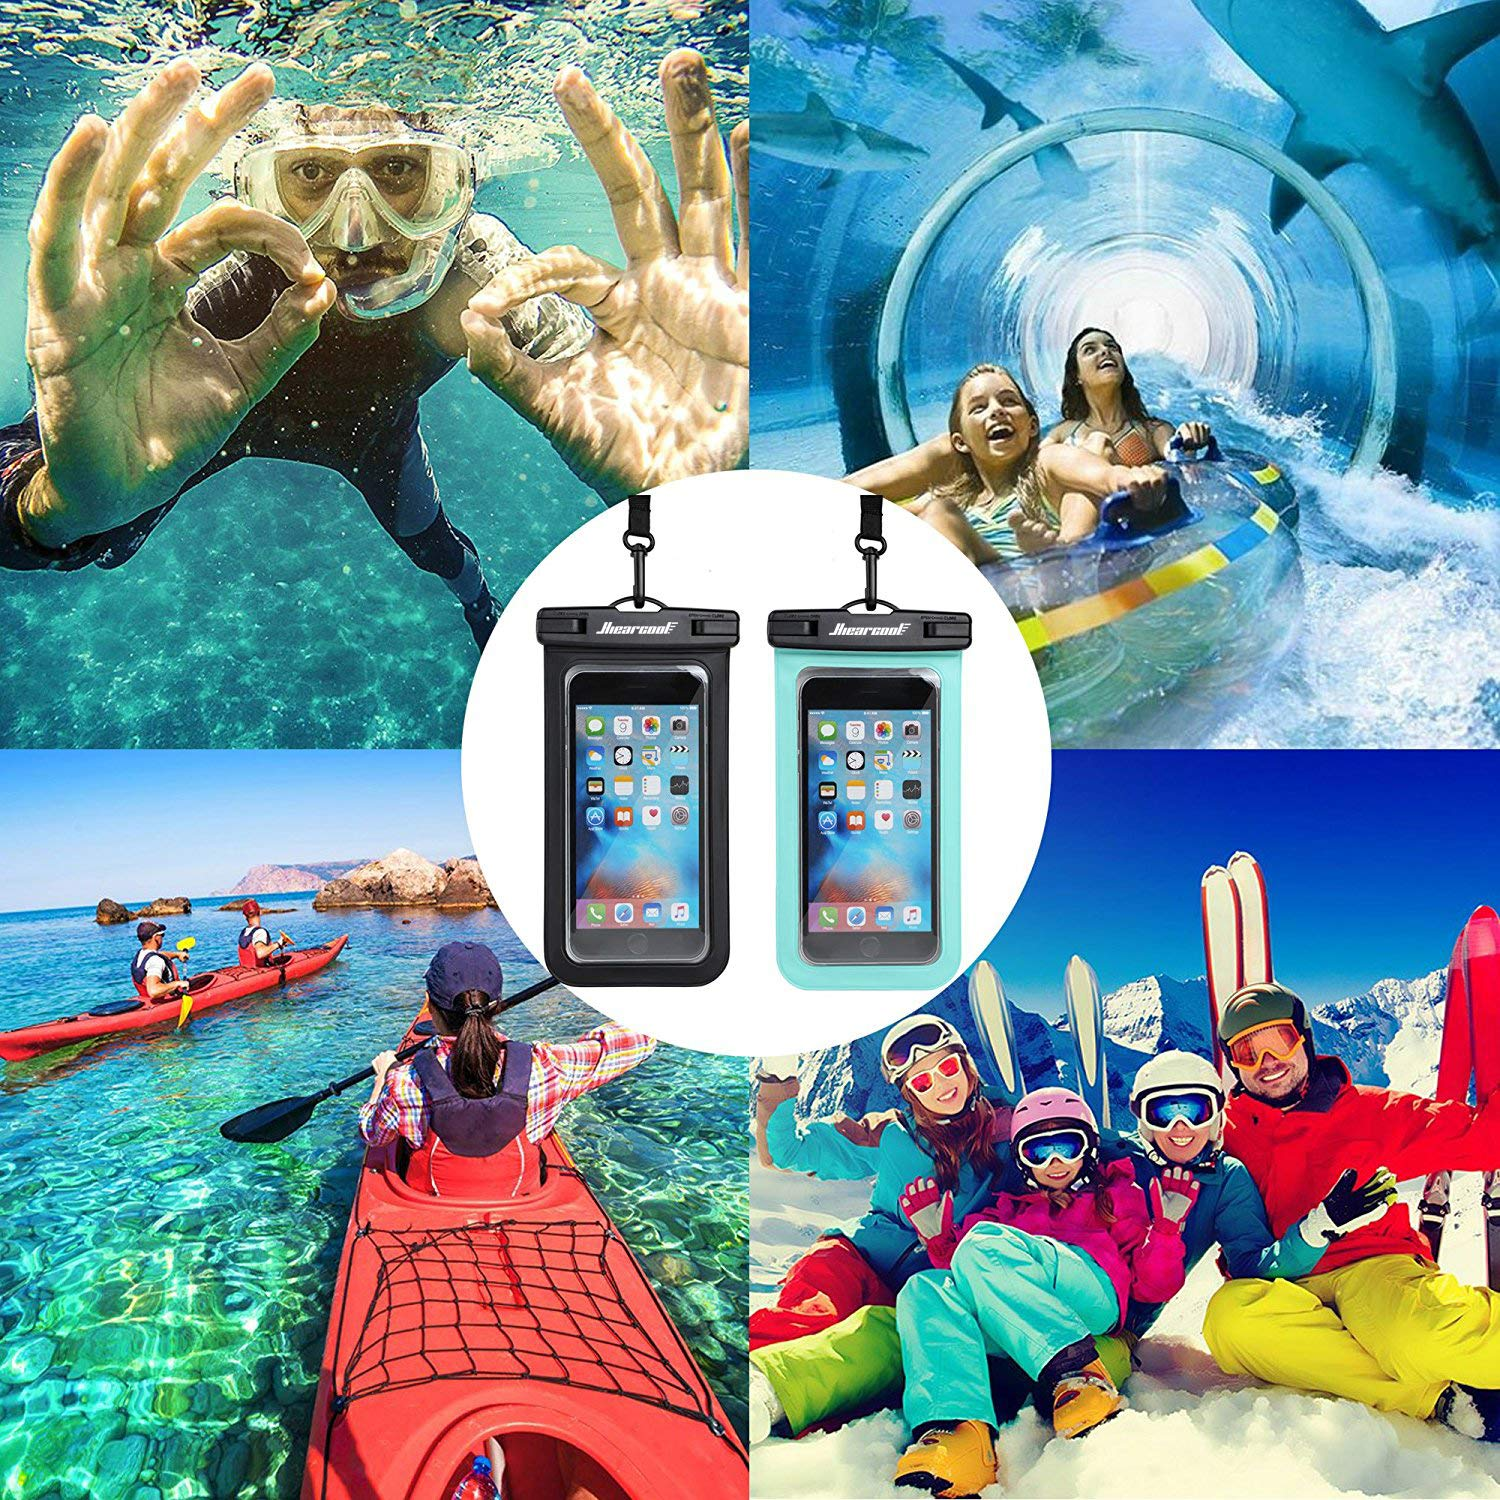 Universal Waterproof Case - Ansot IPX8 Waterproof Phone Pouch - Cellphone Dry Bag for iPhone X/8/ 8plus/7/7plus/6s/6/6s Plus Samsung Galaxy s8/s7 Google Pixel 2 HTC LG Sony Moto up to 7.0'' - 2 Pack by Hiearcool (Image #7)